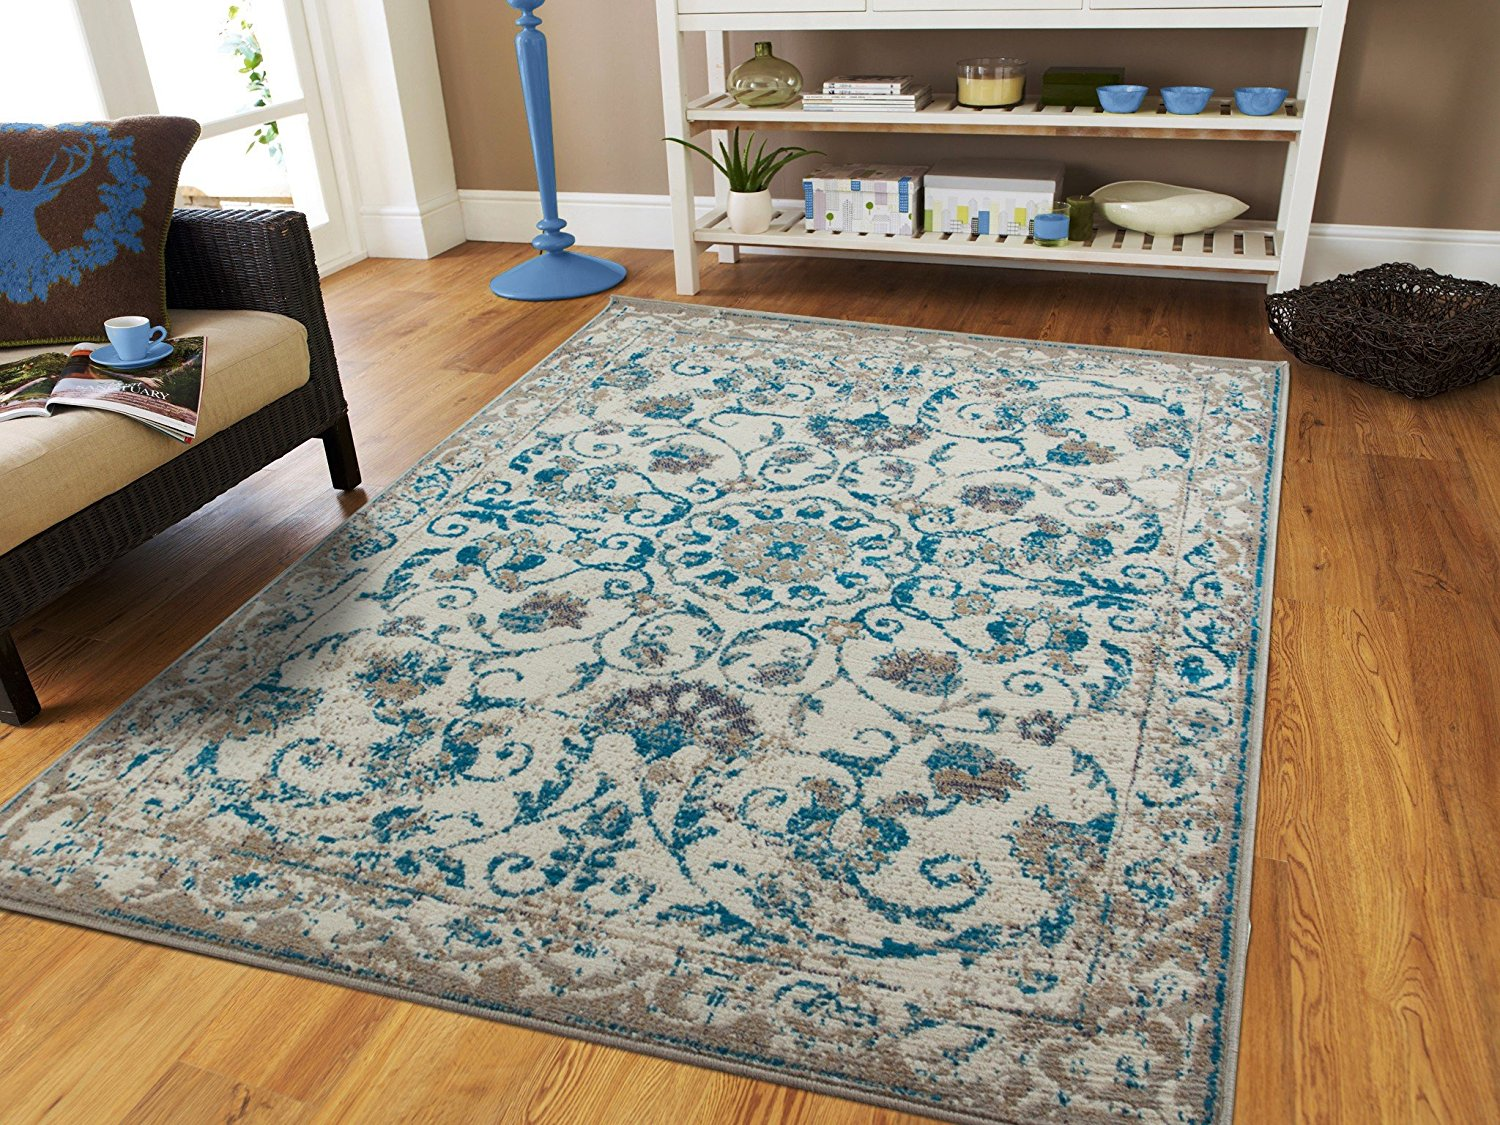 Century Rugs Traditional Vintage Area Rug Distressed Rugs Blue 8x10 Persian Area  Rugs Tassels 8 By